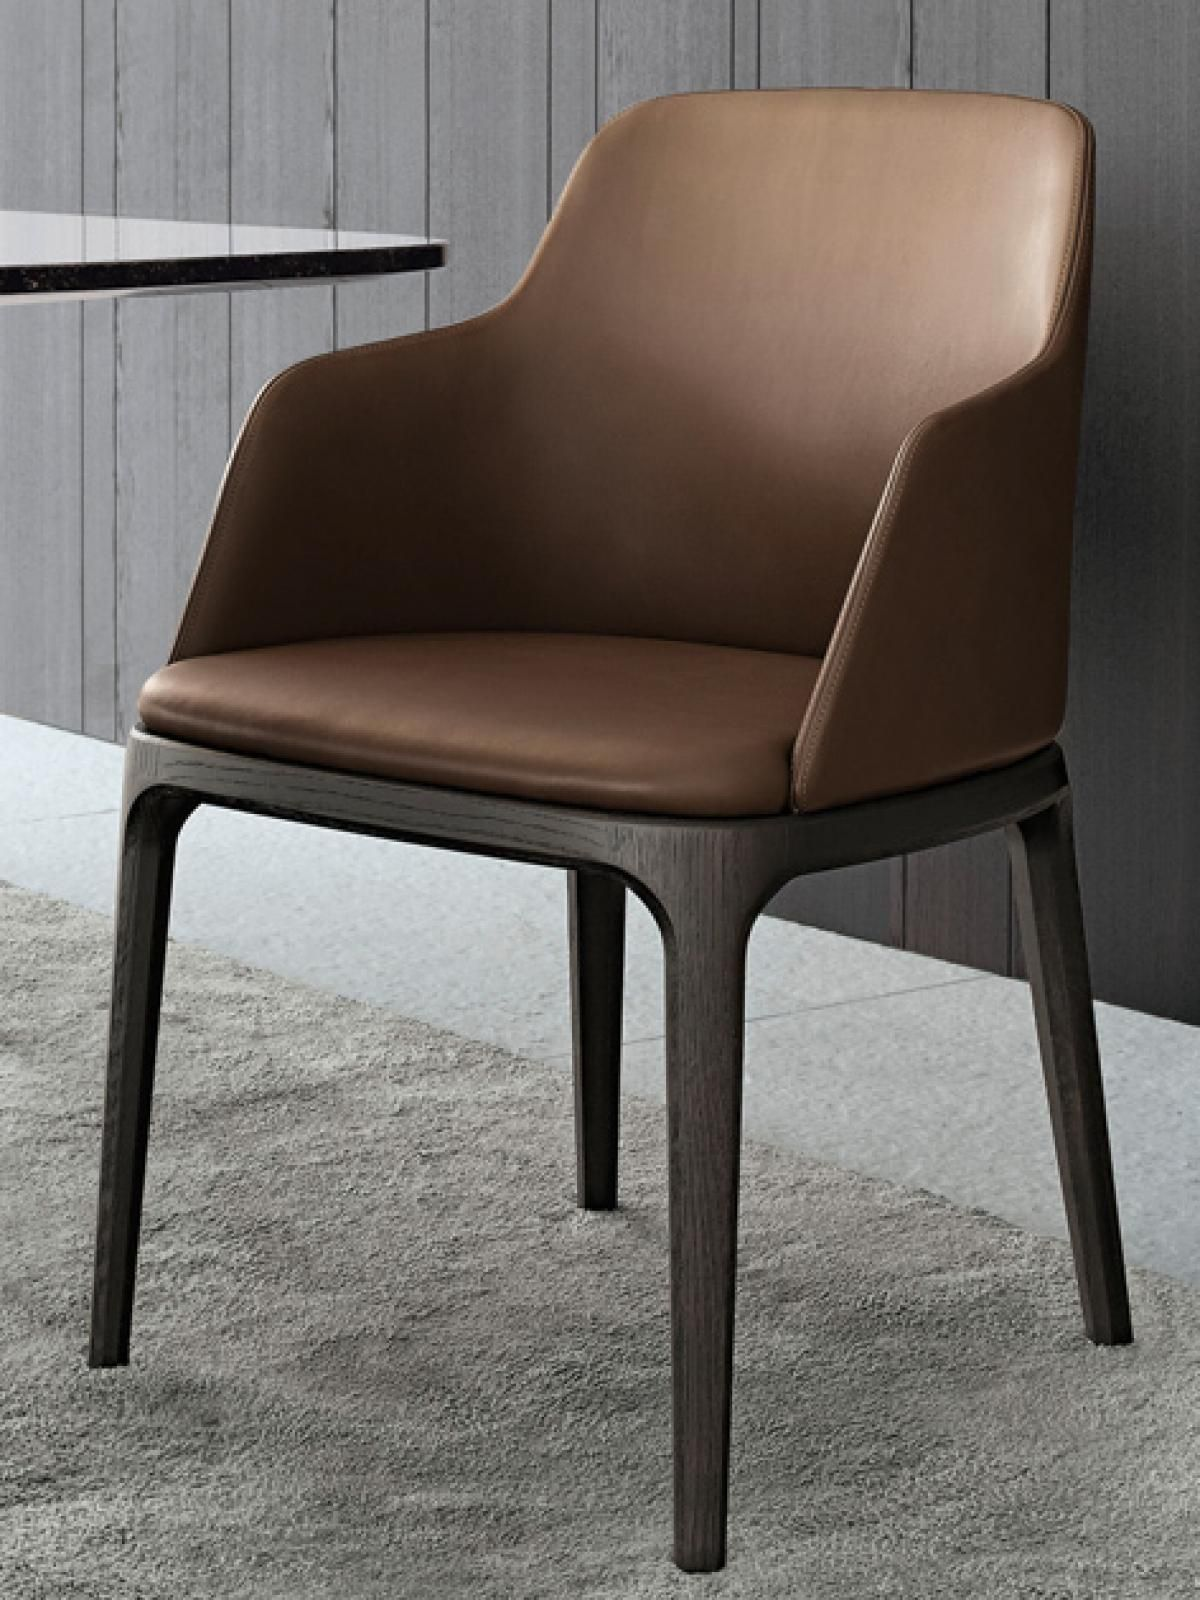 Minotti Dining Room Chairs Google Search Holzstuhle Stuhl Design Polsterstuhl